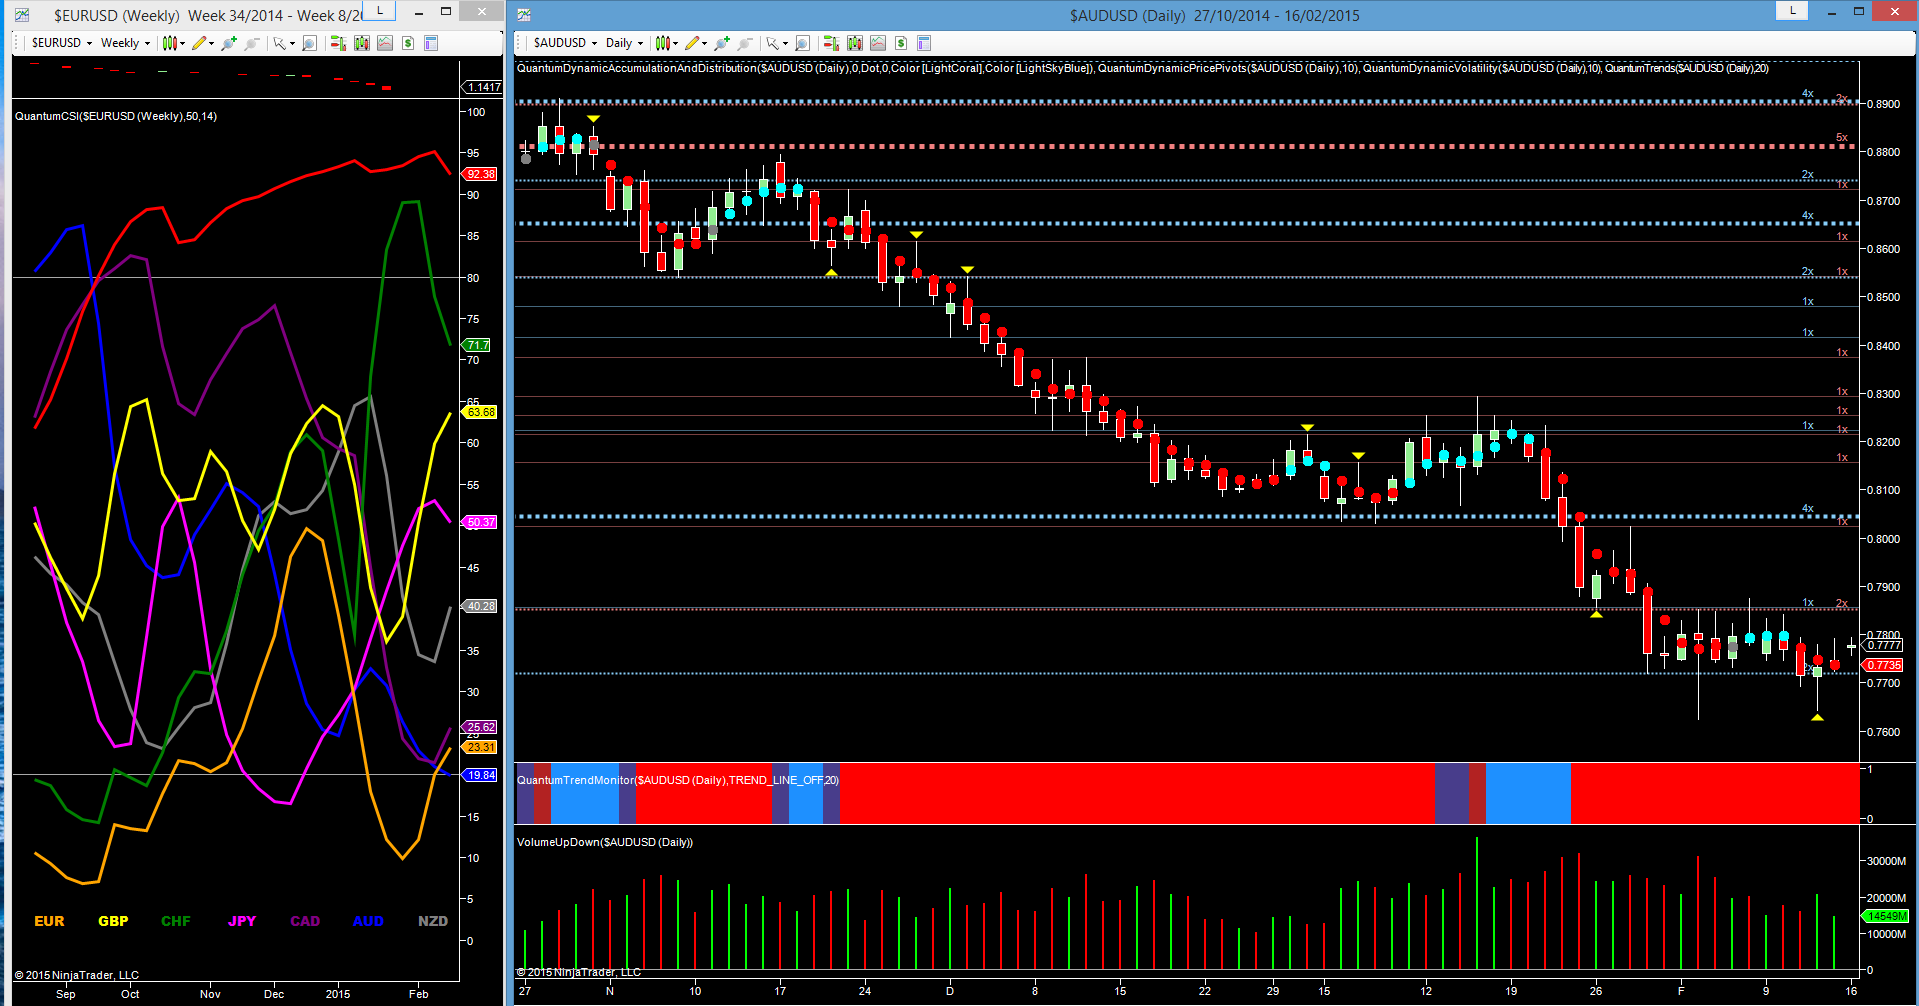 CSI weekly and AUD/USD daily